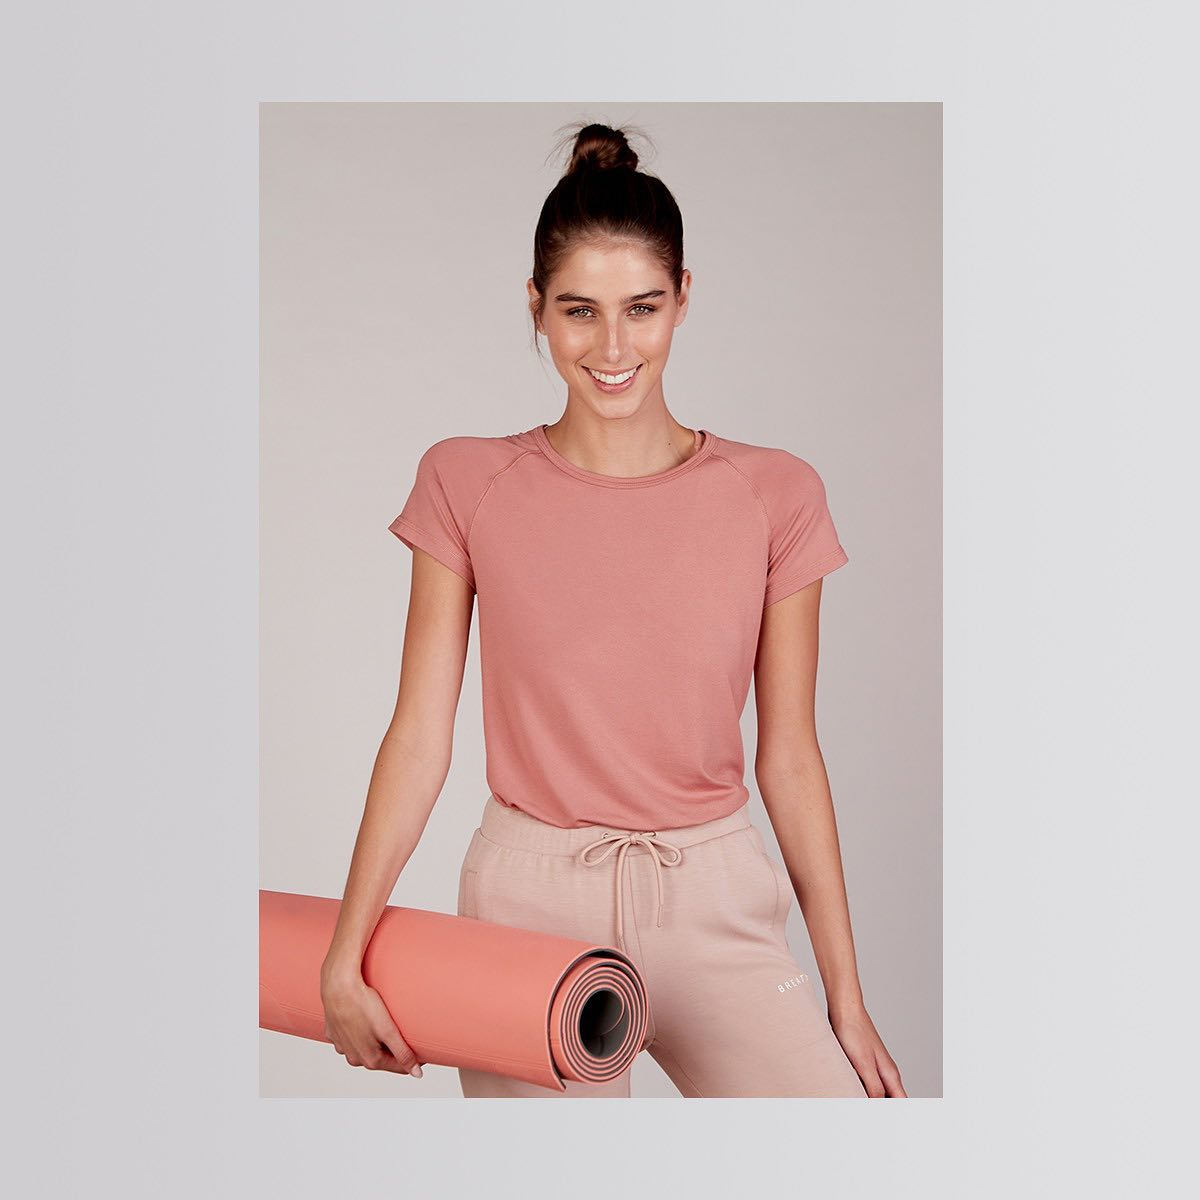 MEET OUR NEW BREATHE IN COLLECTION 🧘🏻♀️ עכשיו בחנויות ובאתר